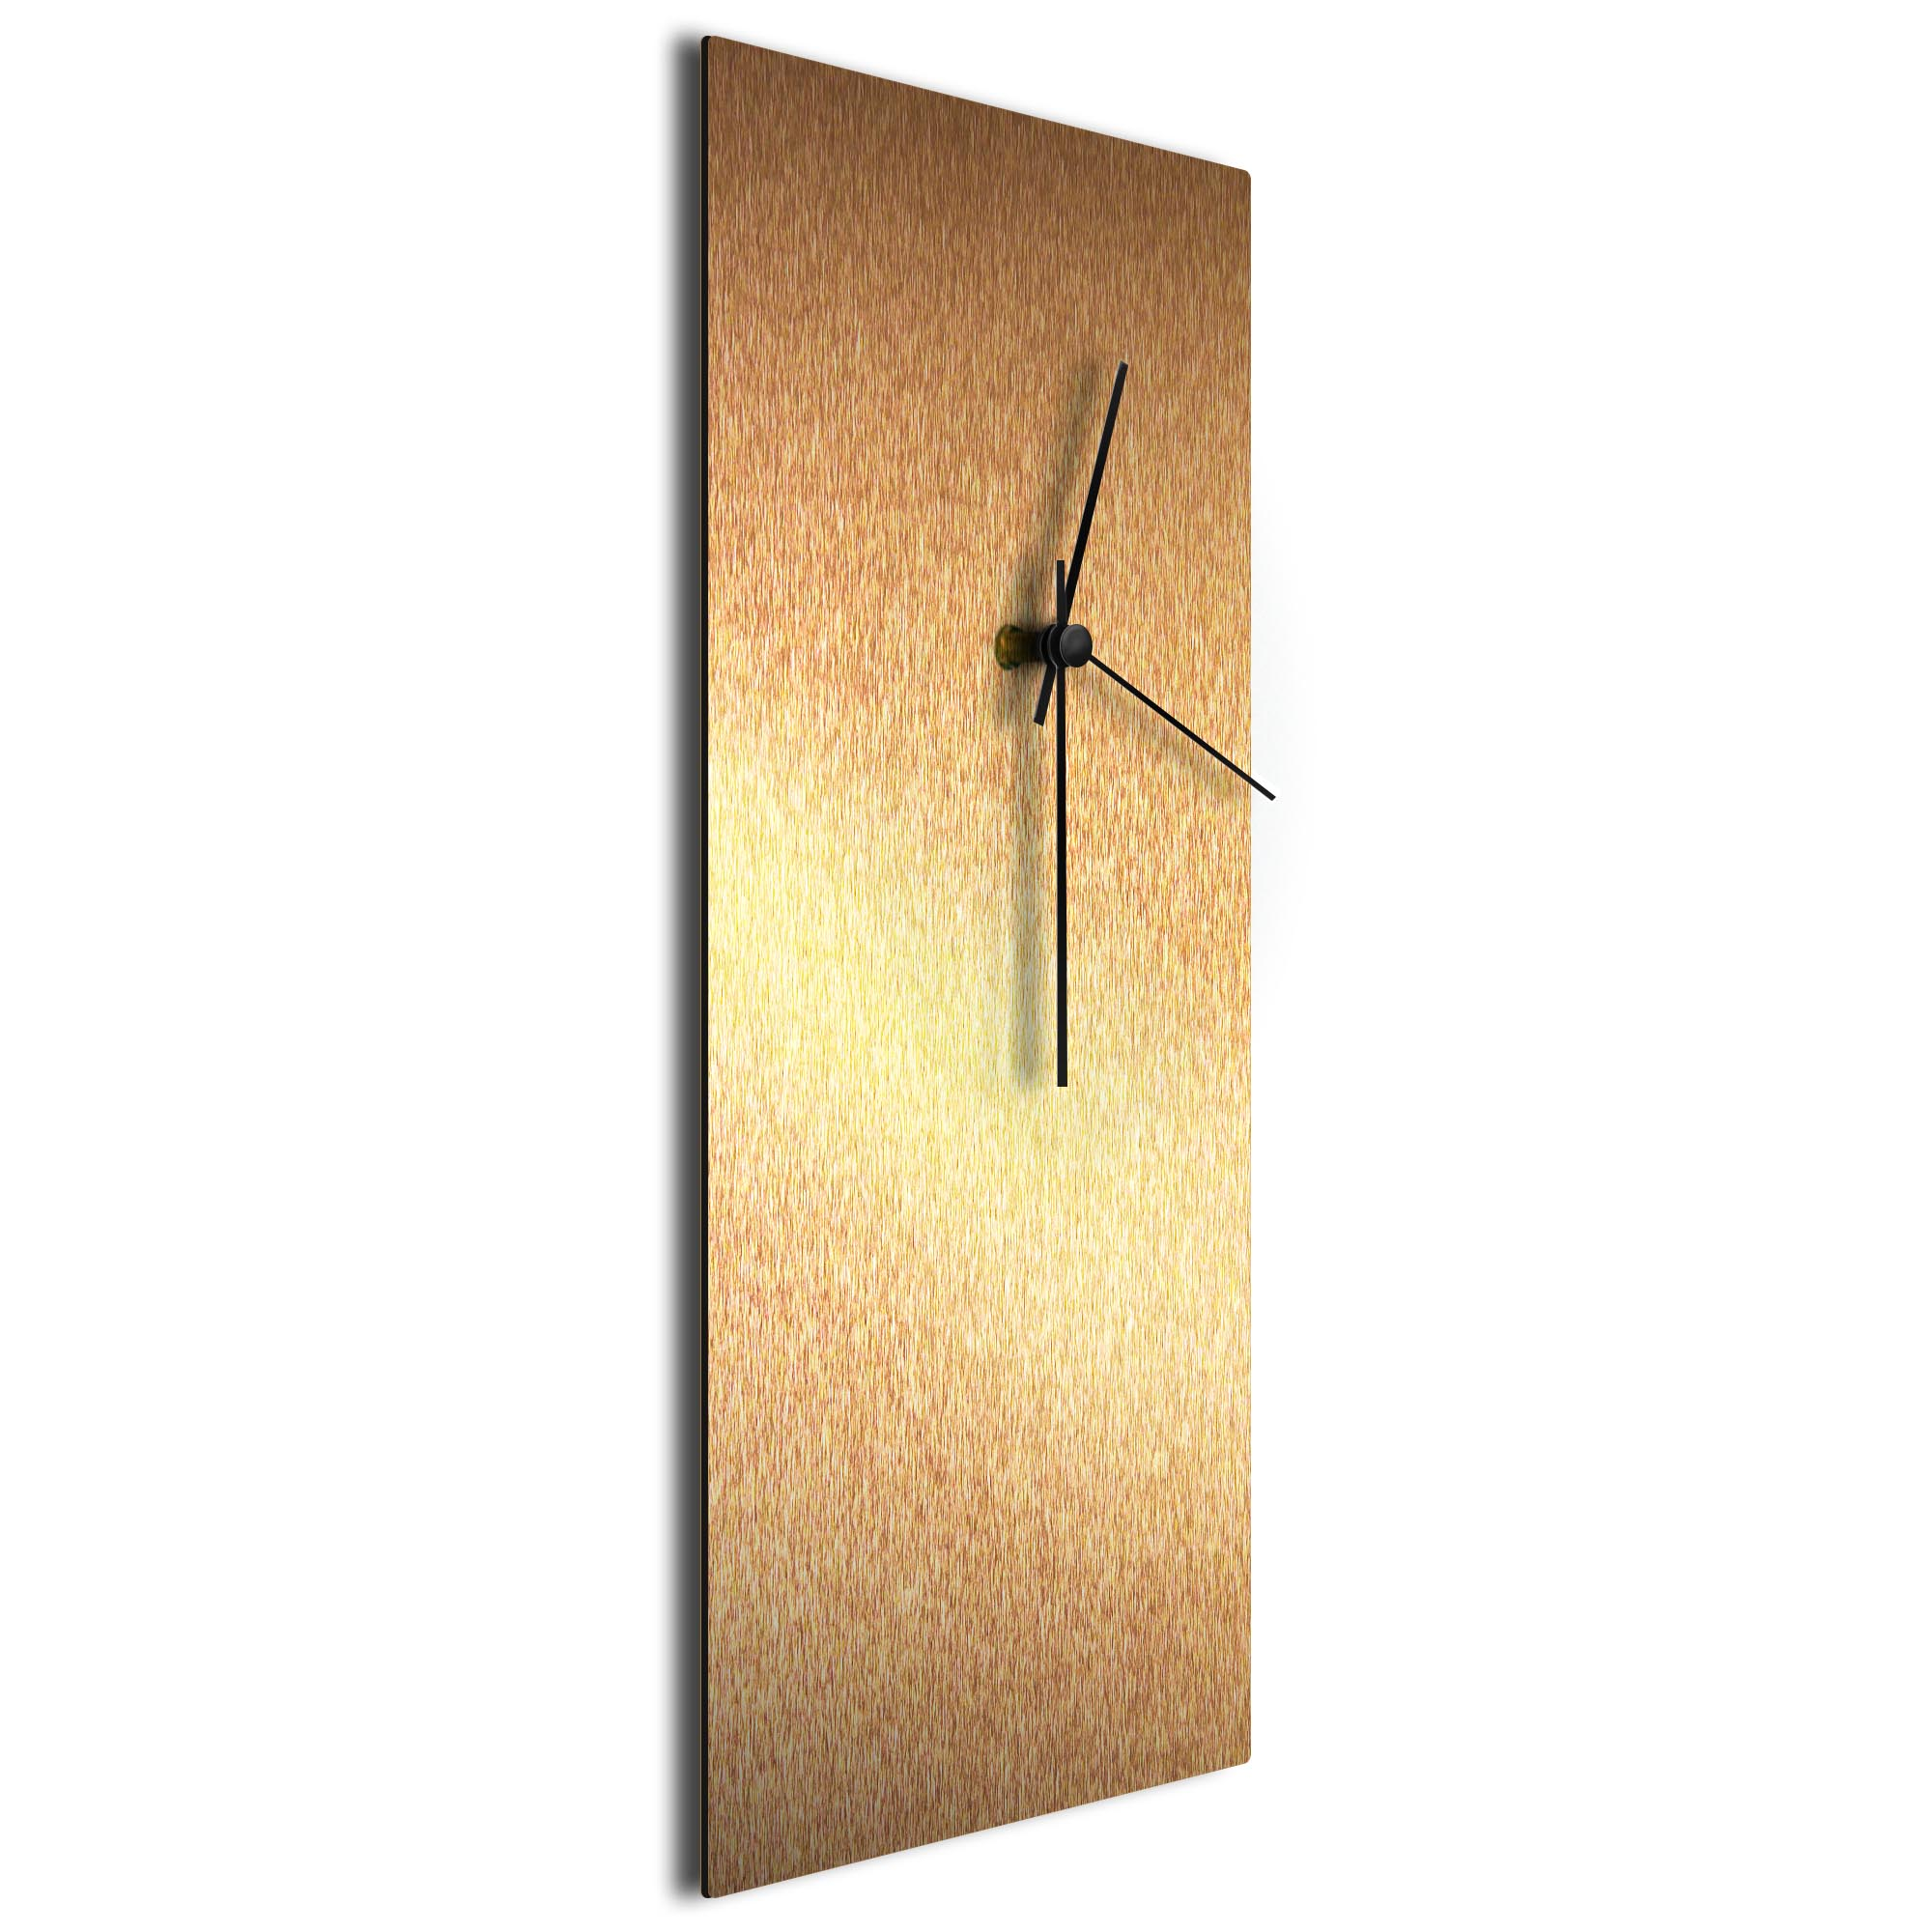 Bronzesmith Clock Black - Image 2